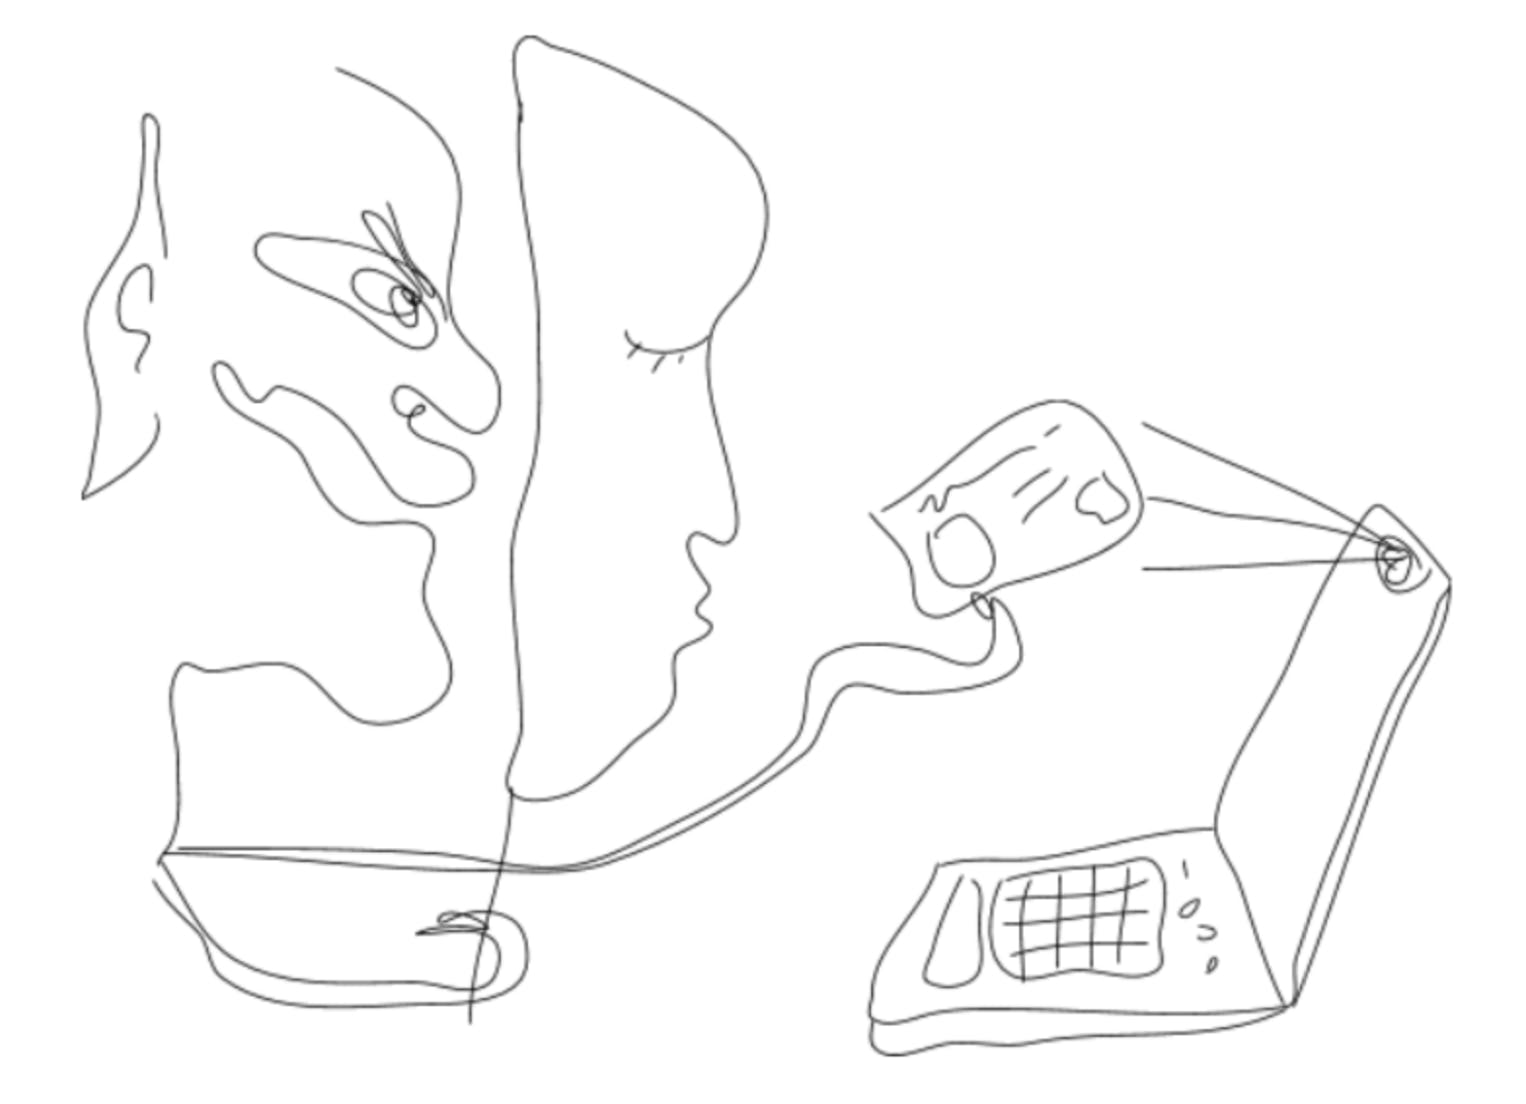 Online identity fraud illustration